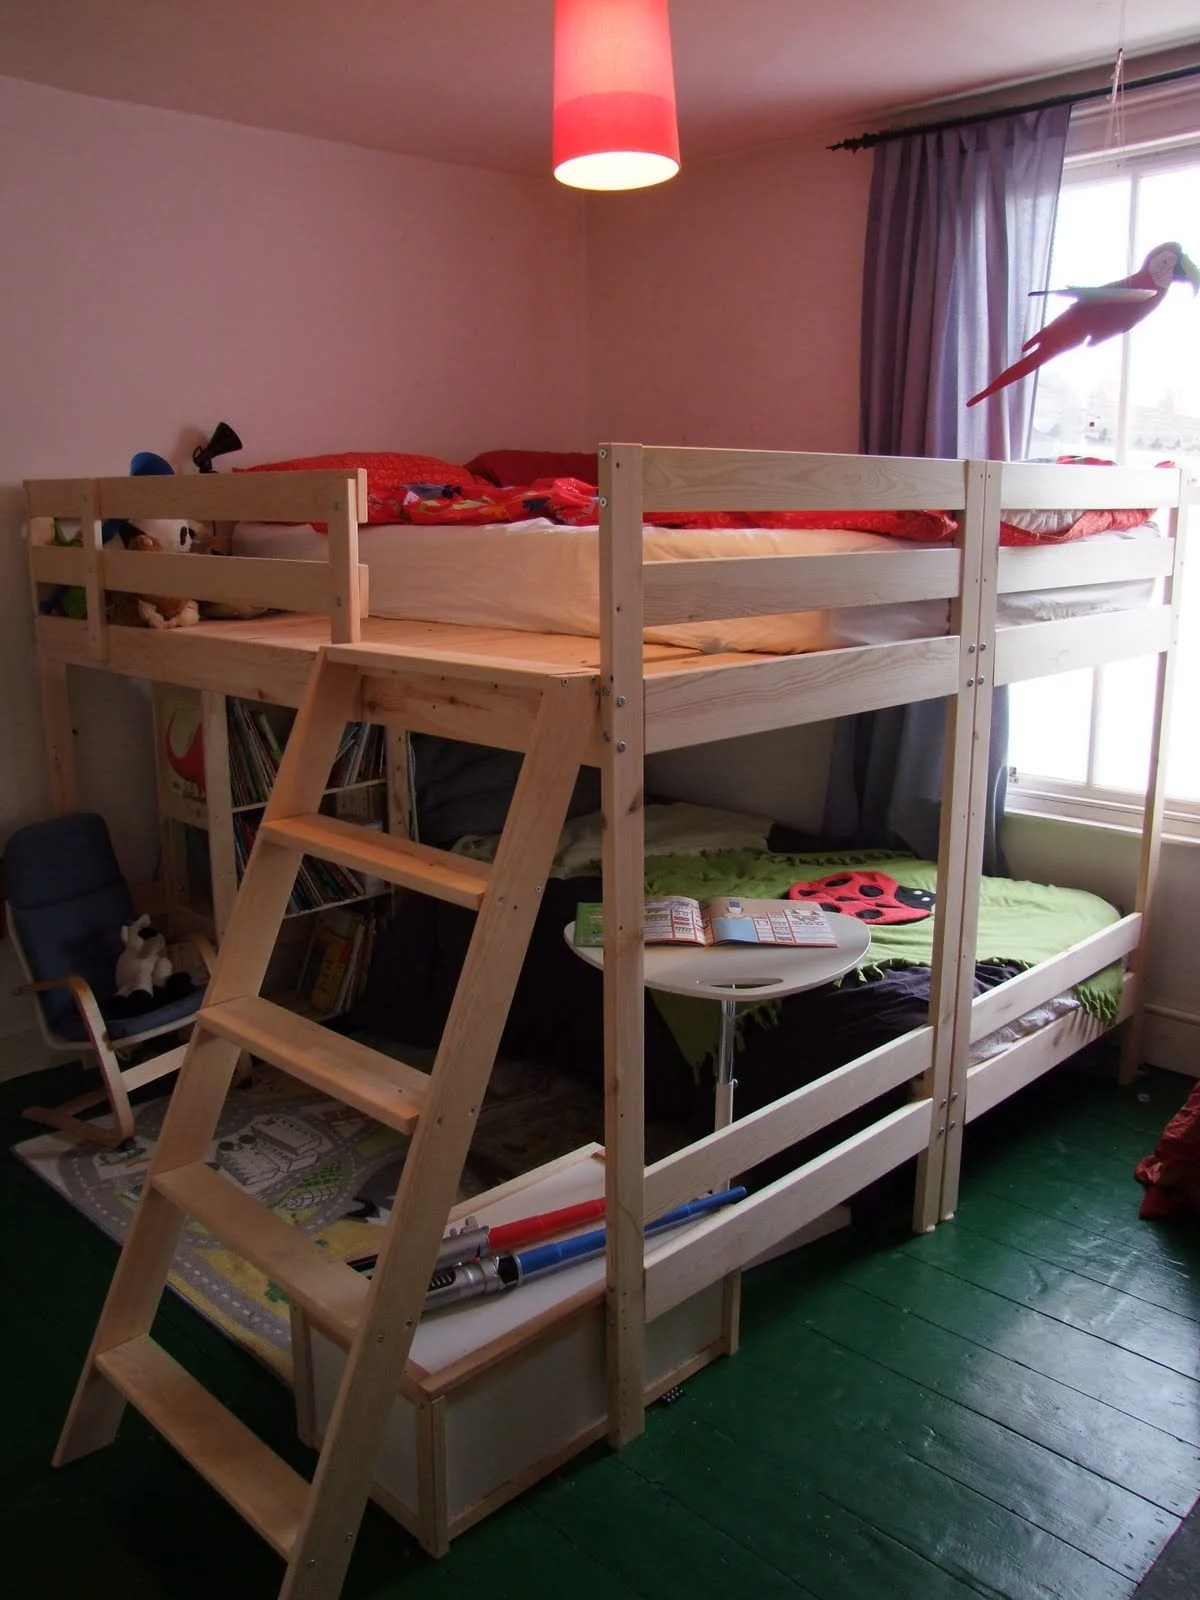 Nice Materials MYDAL bunk beds x saw drill a few extra screws